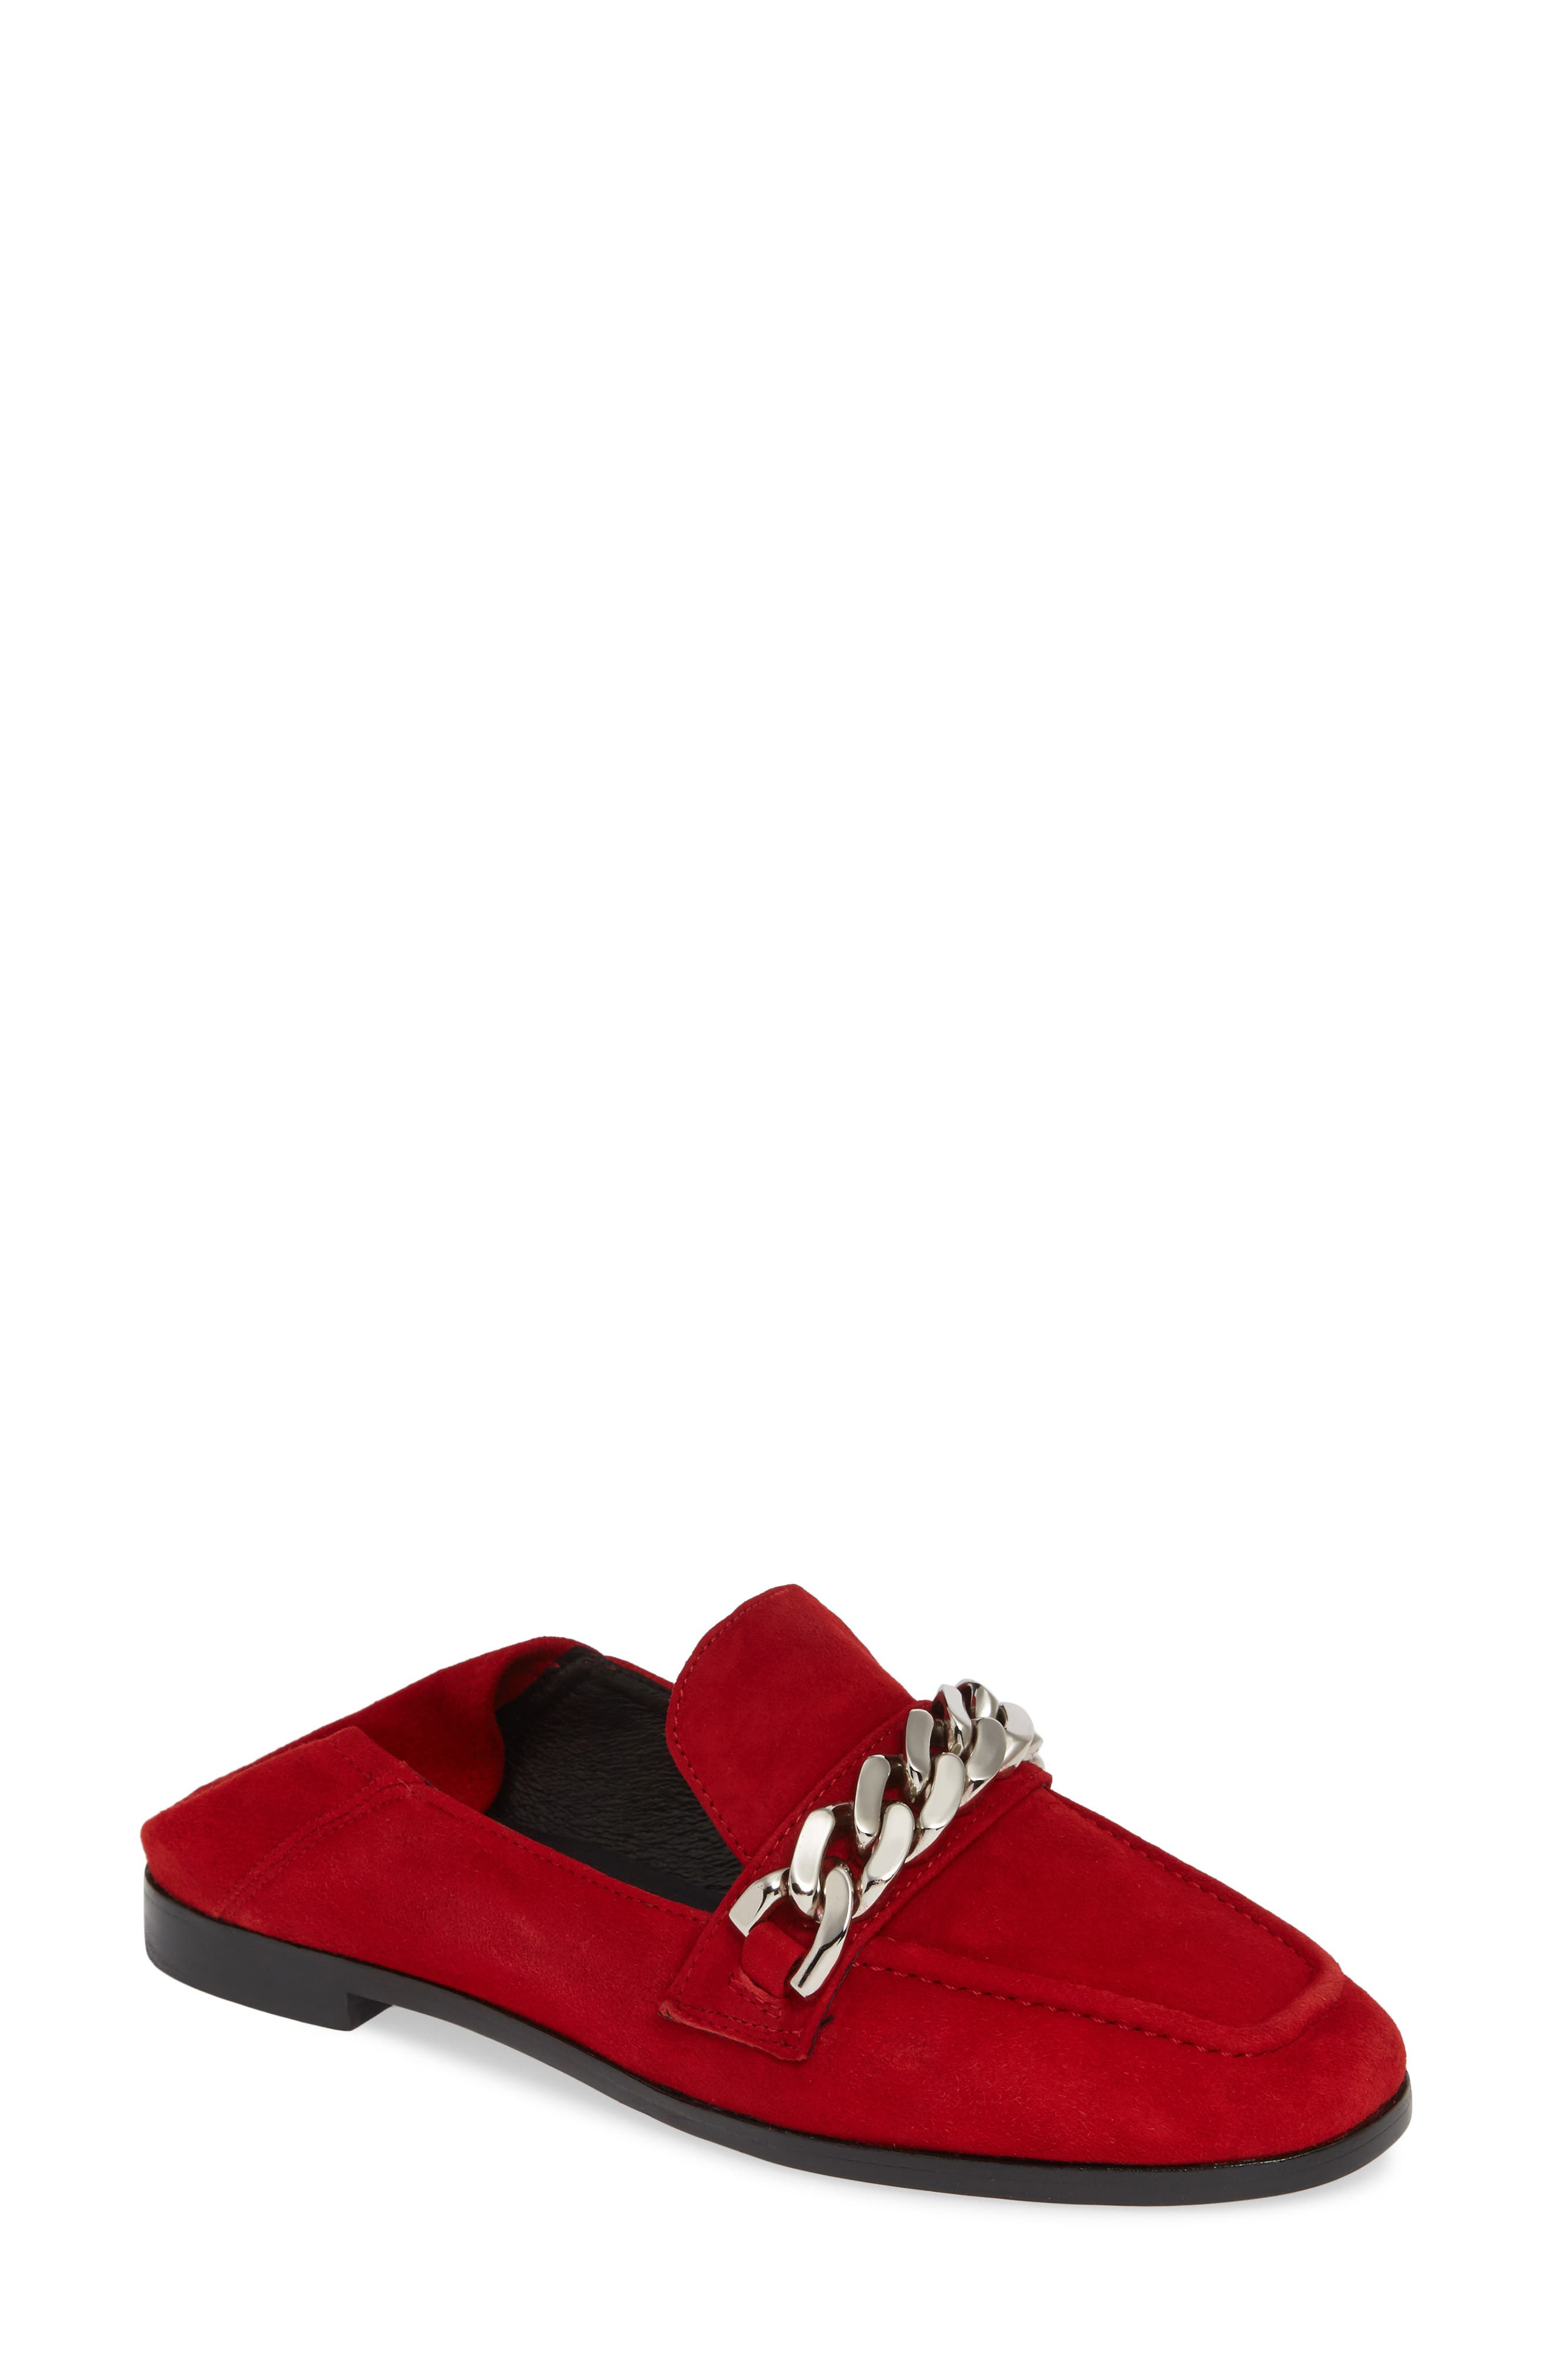 Jesse Convertible Heel Loafer,                         Main,                         color, RED SUEDE SILVER